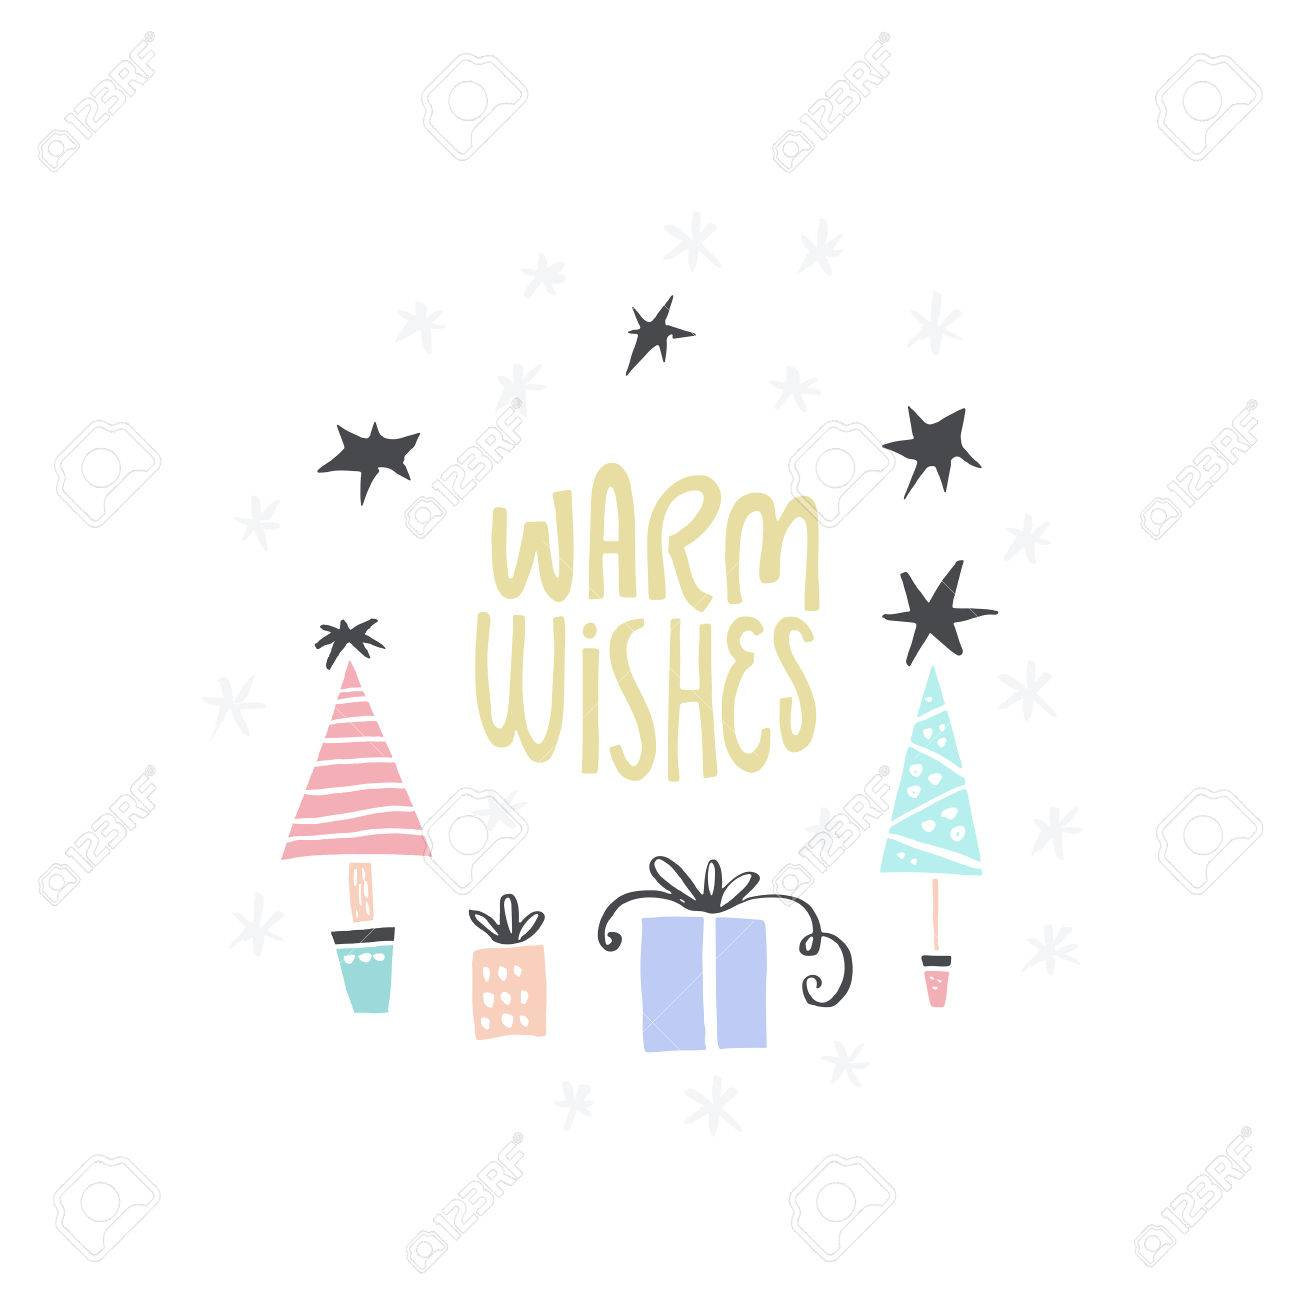 Christmas Card Design With Lettering Warm Wishes And Illustrations